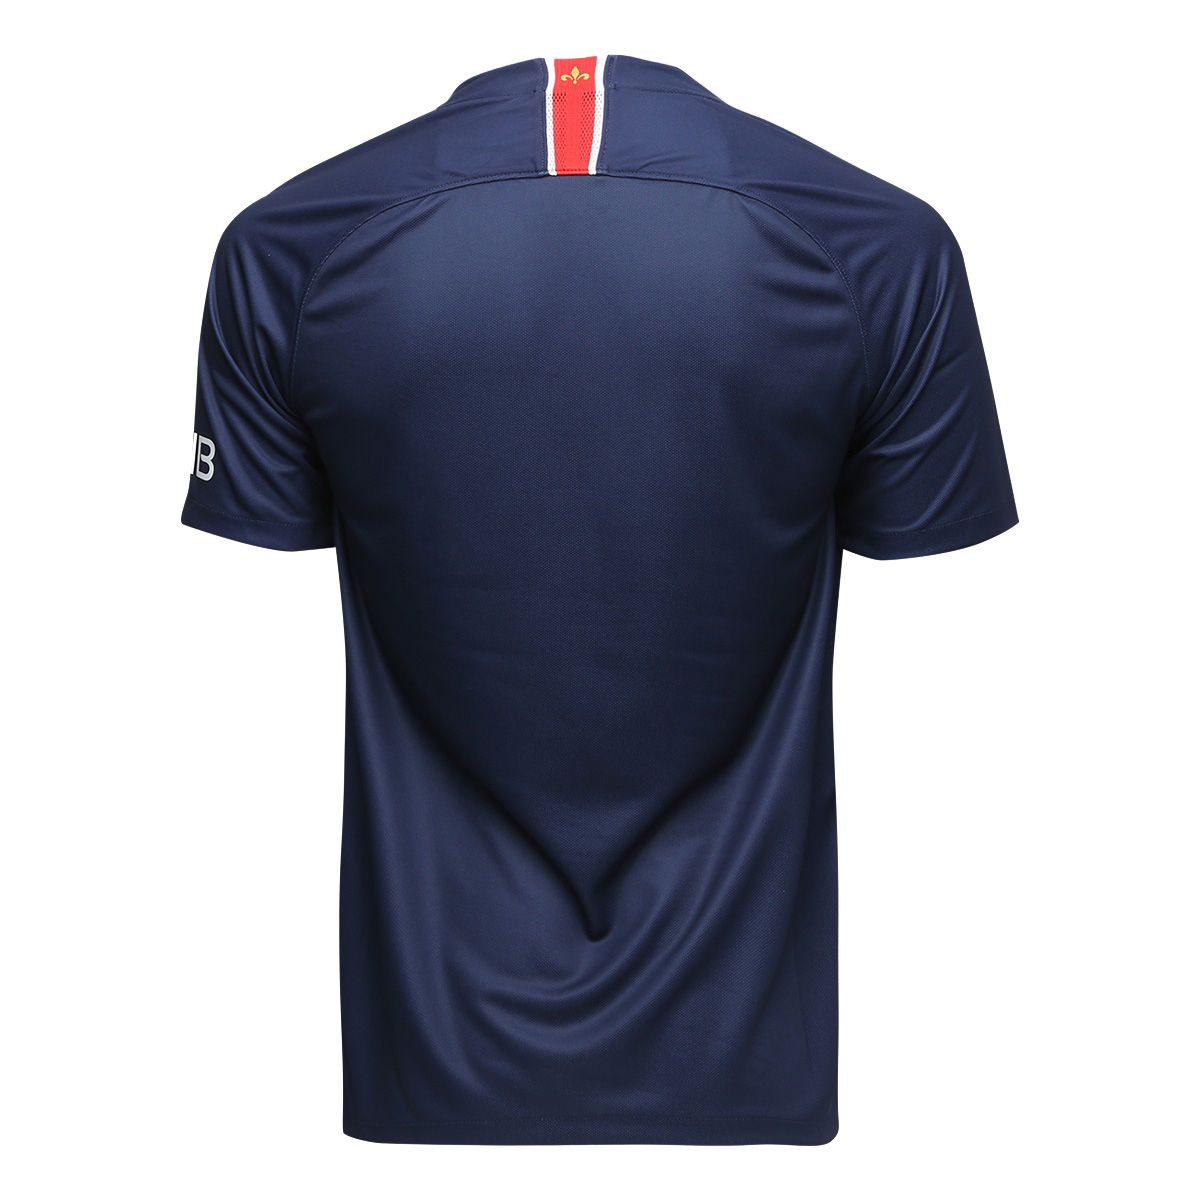 33bb070821 Camisa Paris Saint-Germain Home 18 19 s n° Torcedor Nike Masculina